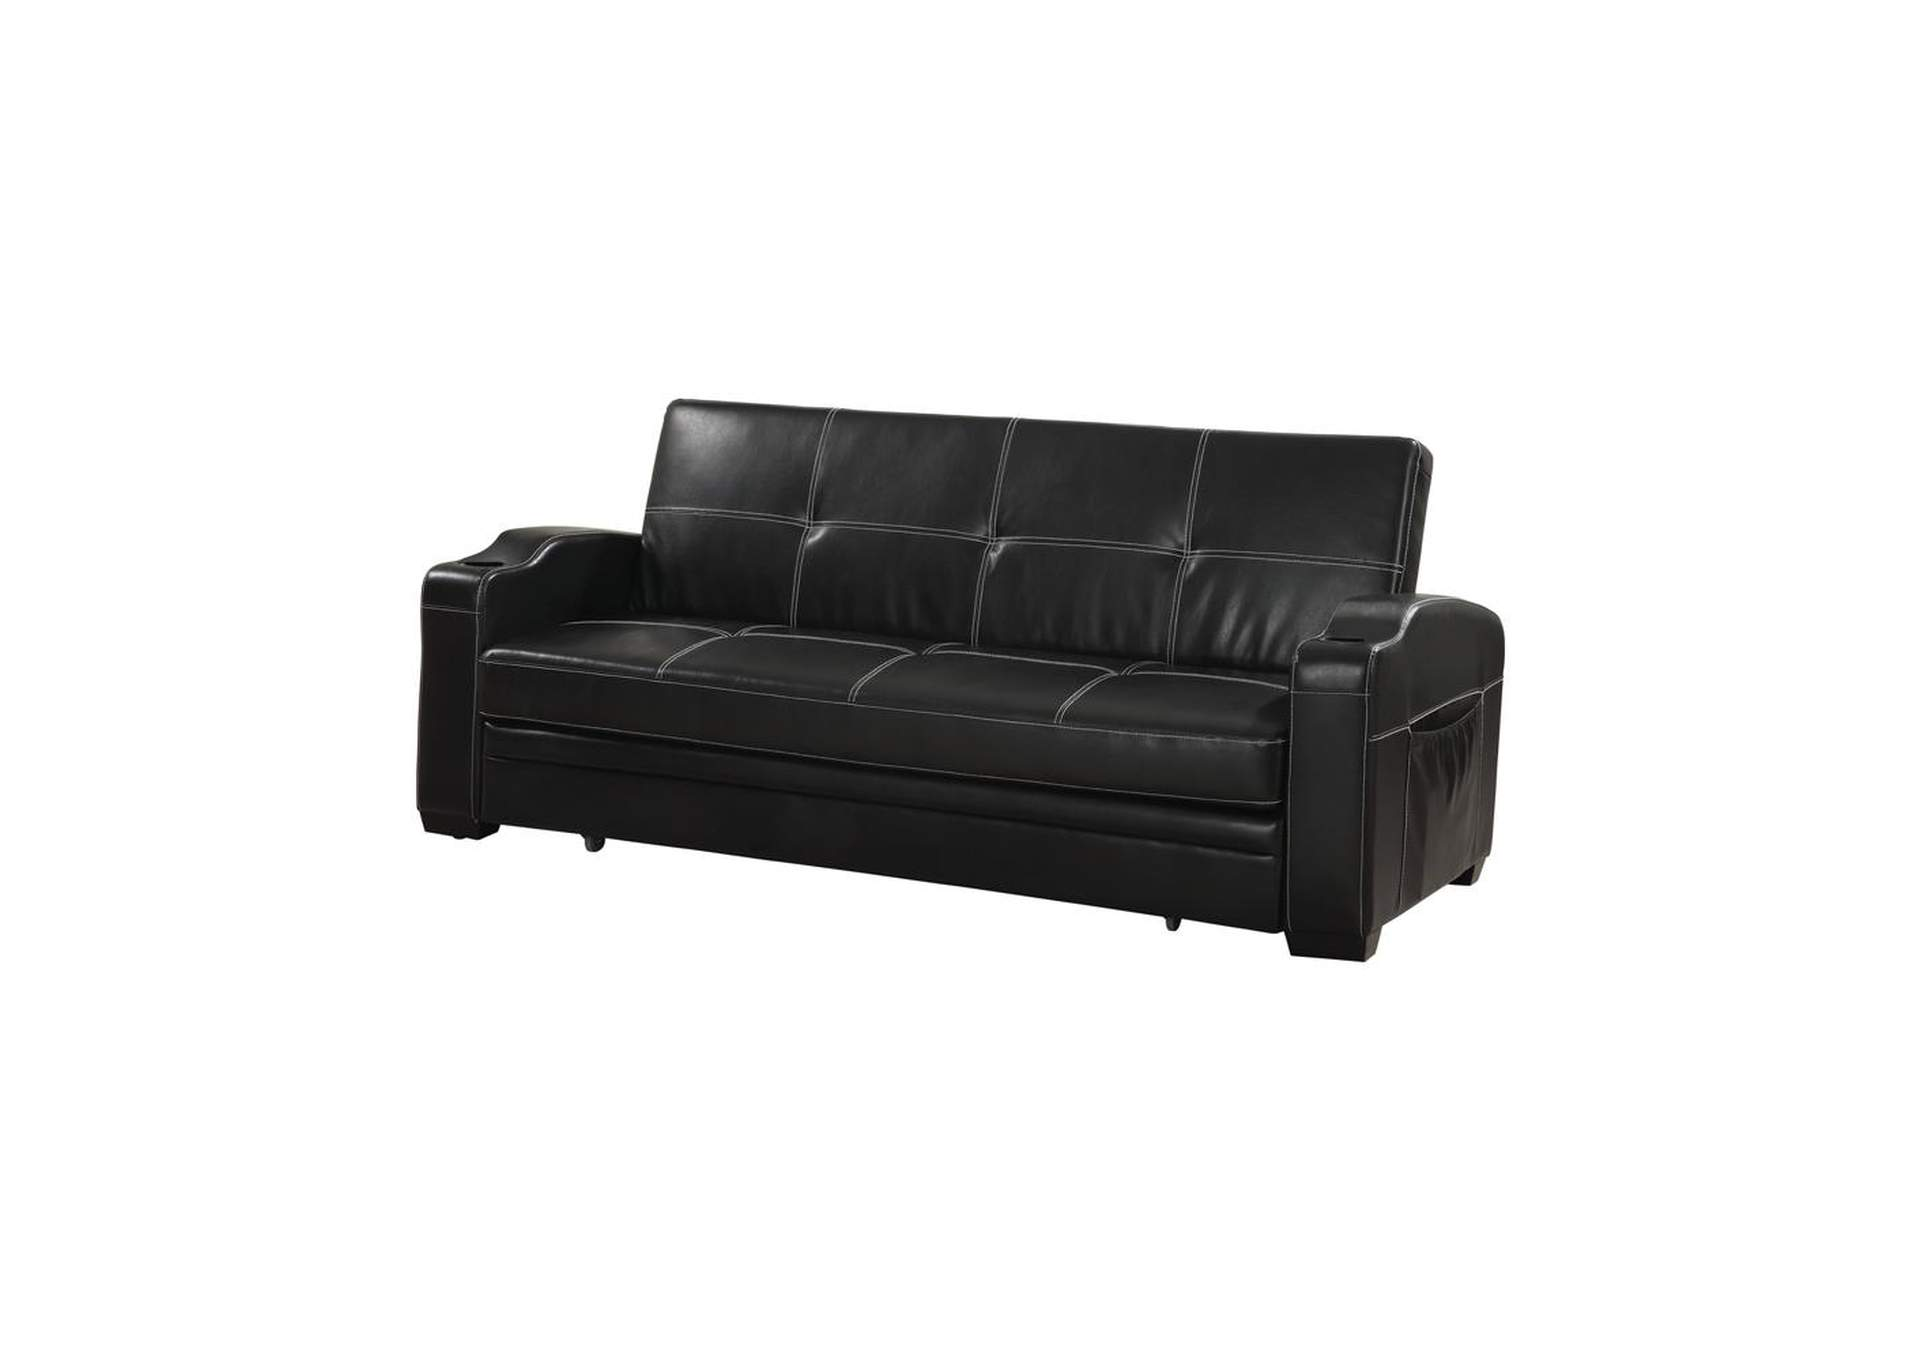 Mine Shaft Contemporary Black Sofa Bed,Coaster Furniture